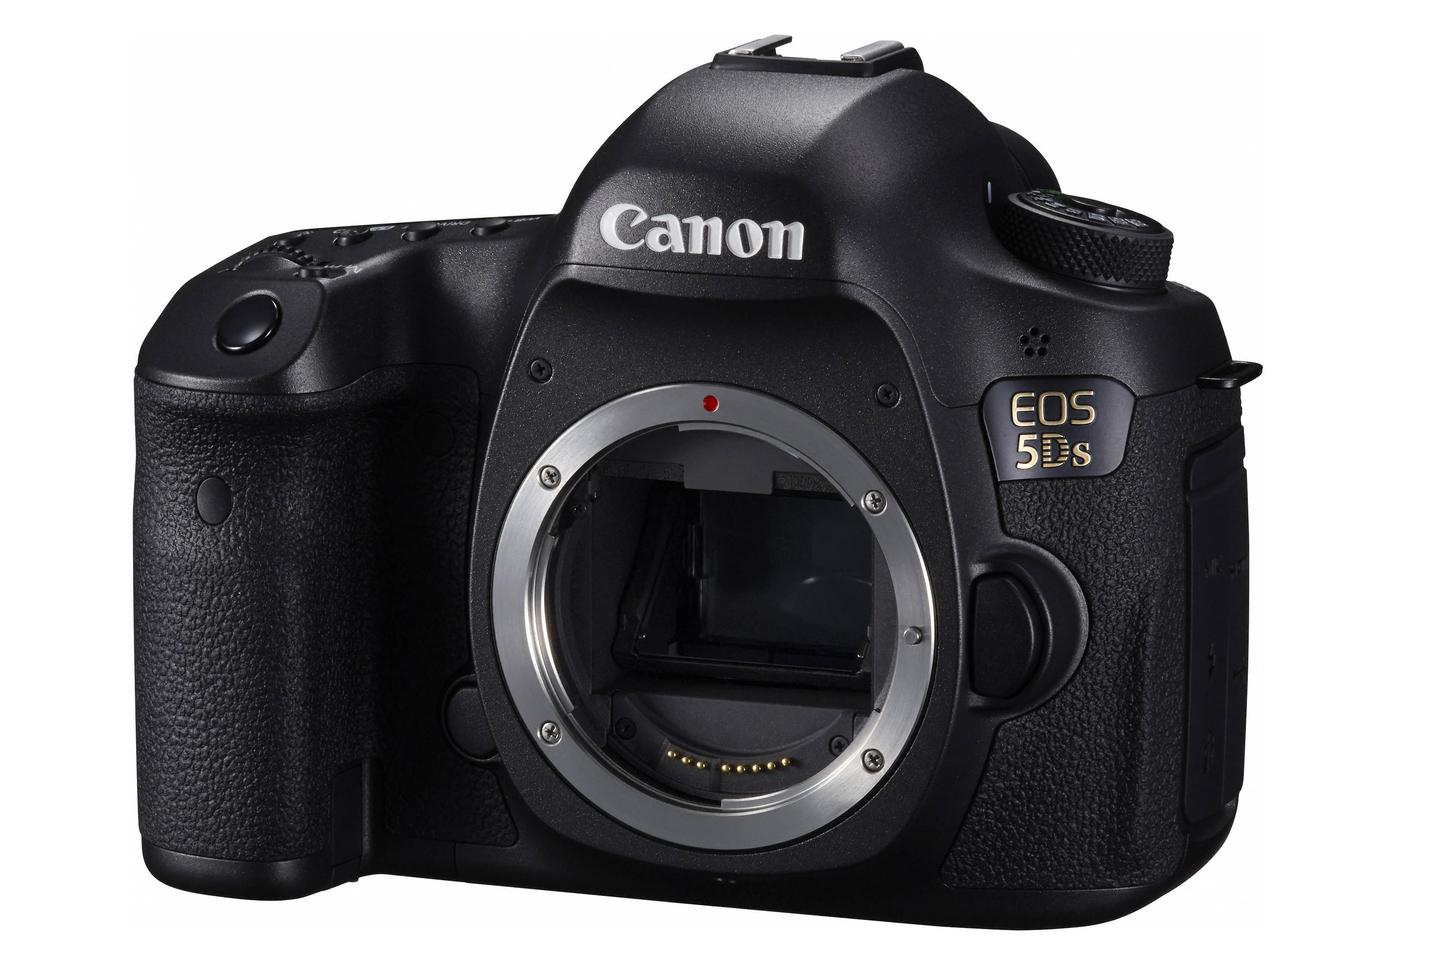 The Canon EOS 5DS and 5DS R use Canon's Dual DIGIC 6 image processors